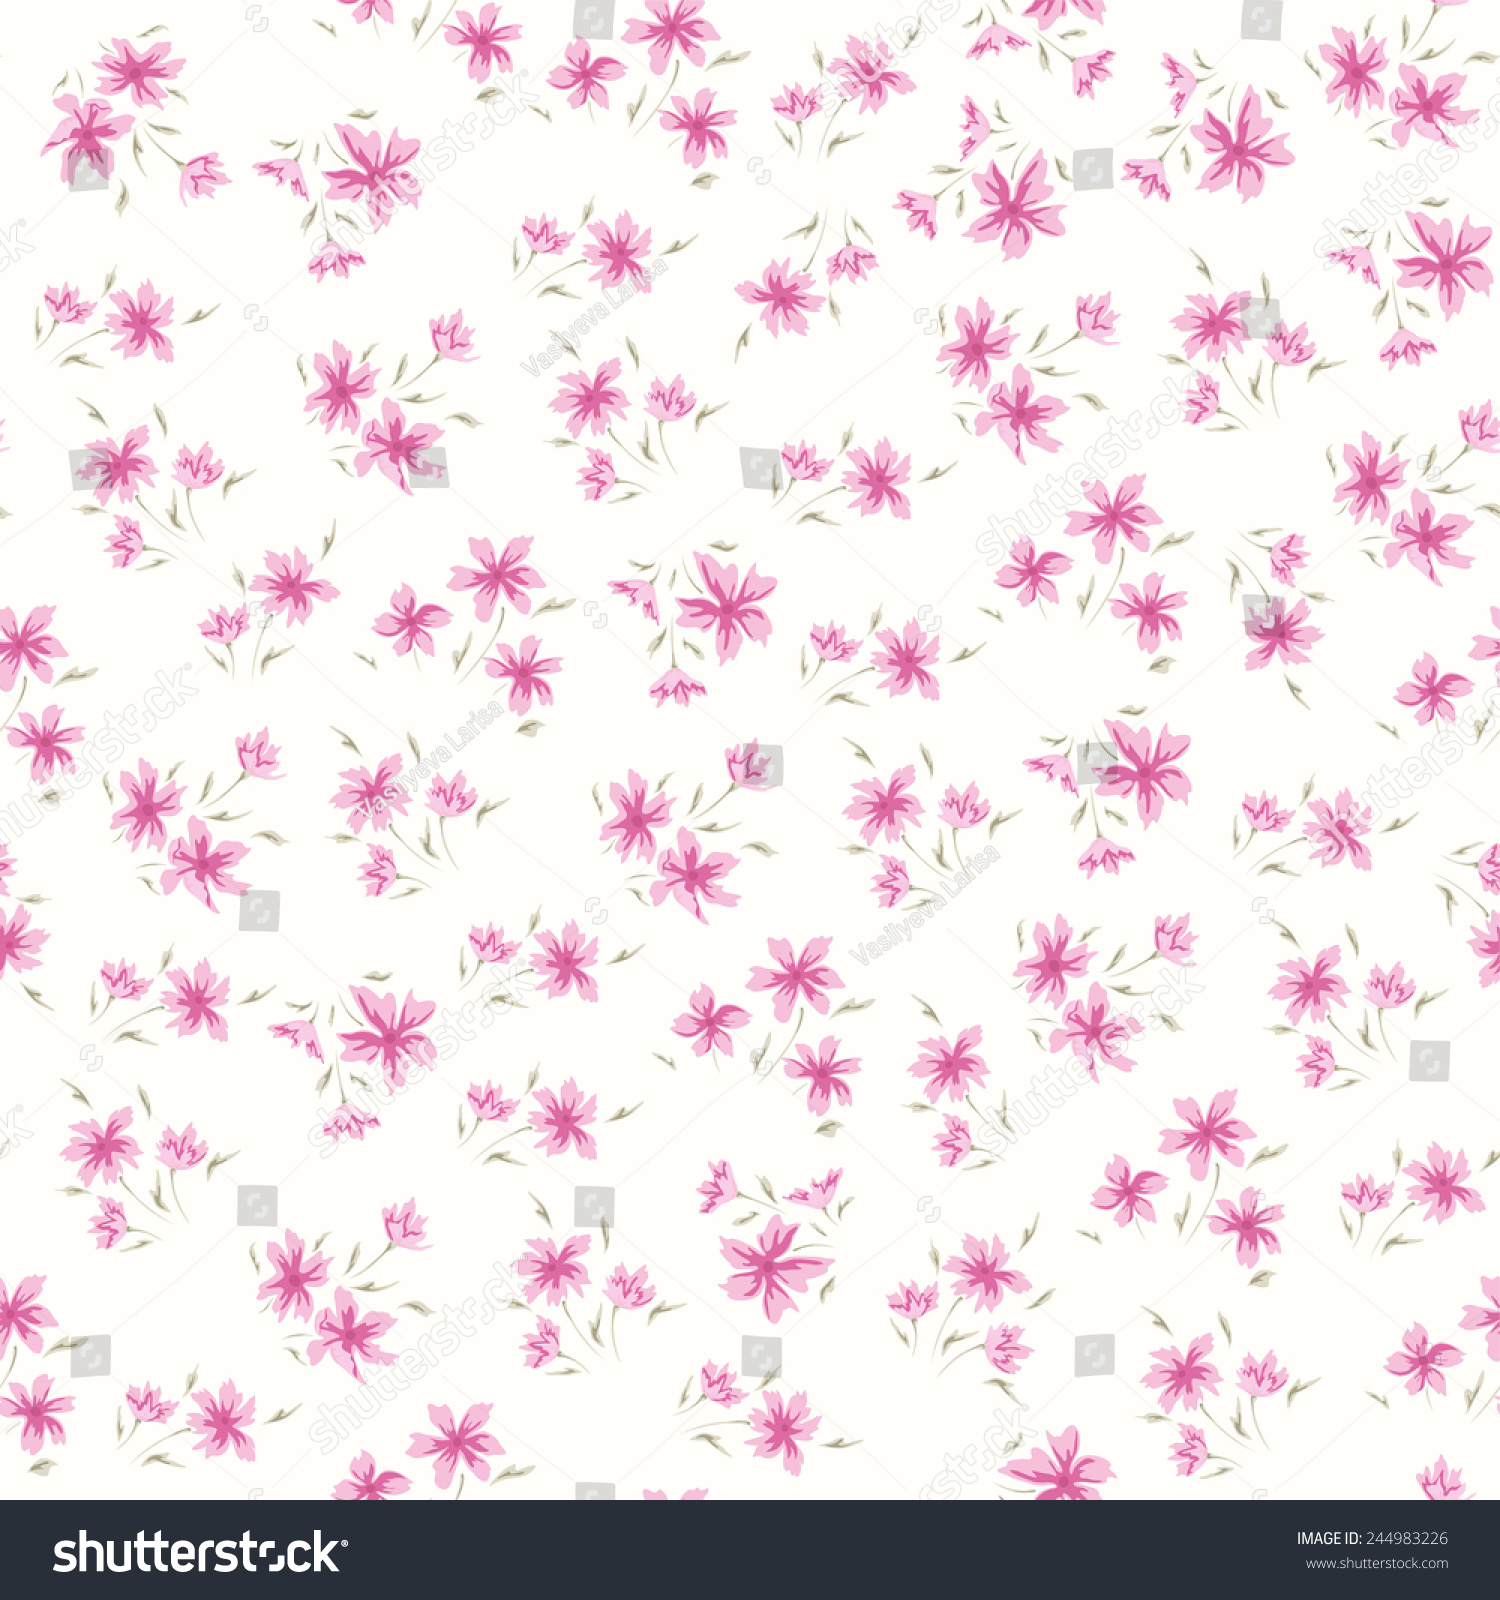 Simple flower pattern background - photo#6